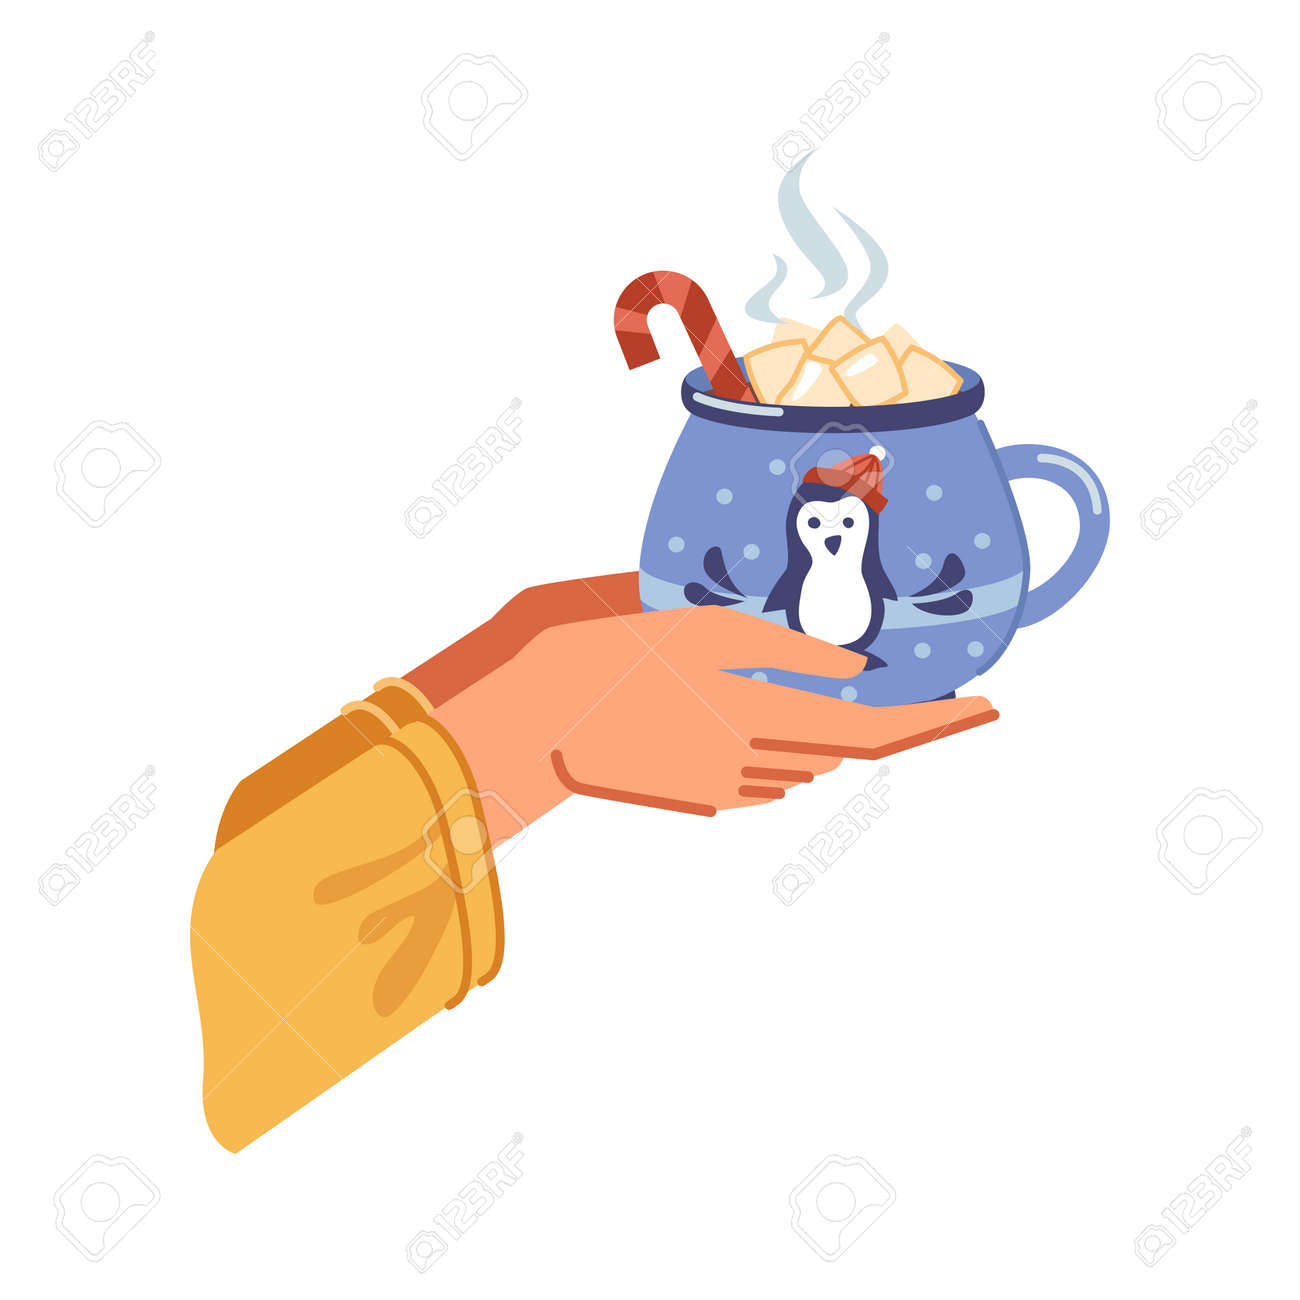 Traditional winter drink of cocoa with melting marshmallows poured in cup. Hands holding beverage with candy stick, mug with xmas penguin decoration. Vector in flat cartoon style illustration - 171589771